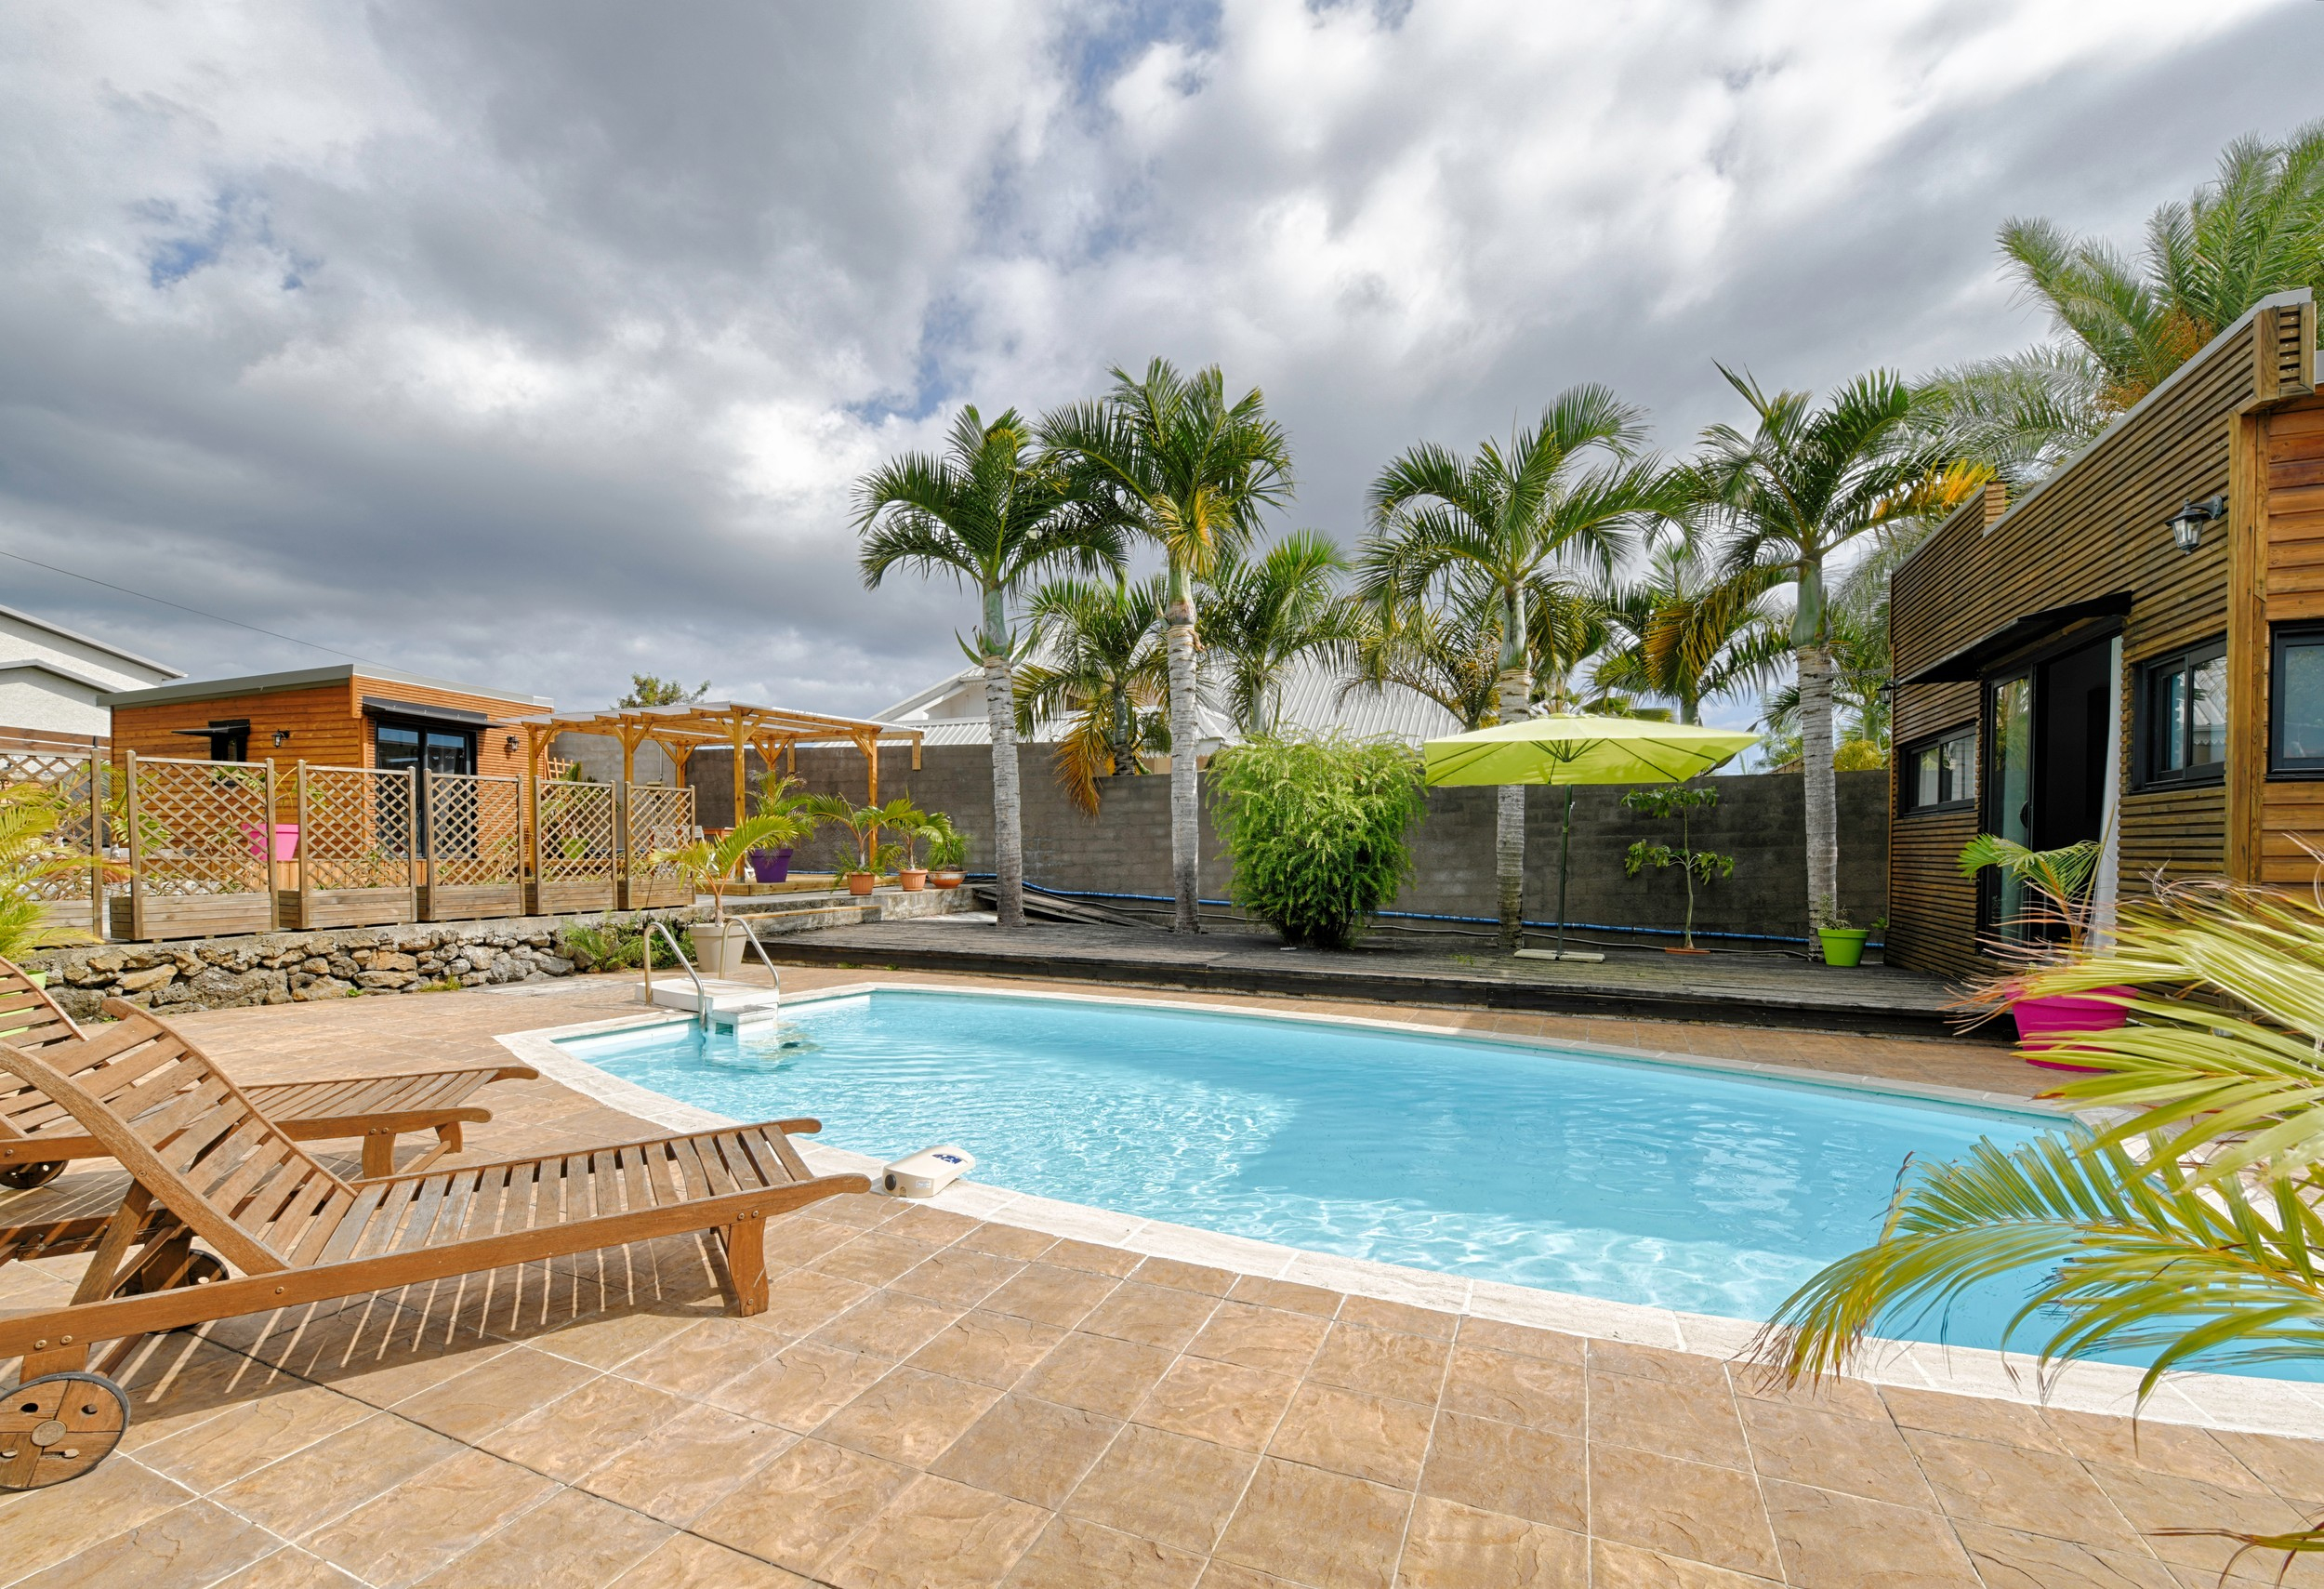 Reunion Island Holiday Rental In St Louis At 15Min From The Beach tout Piscine St Lo